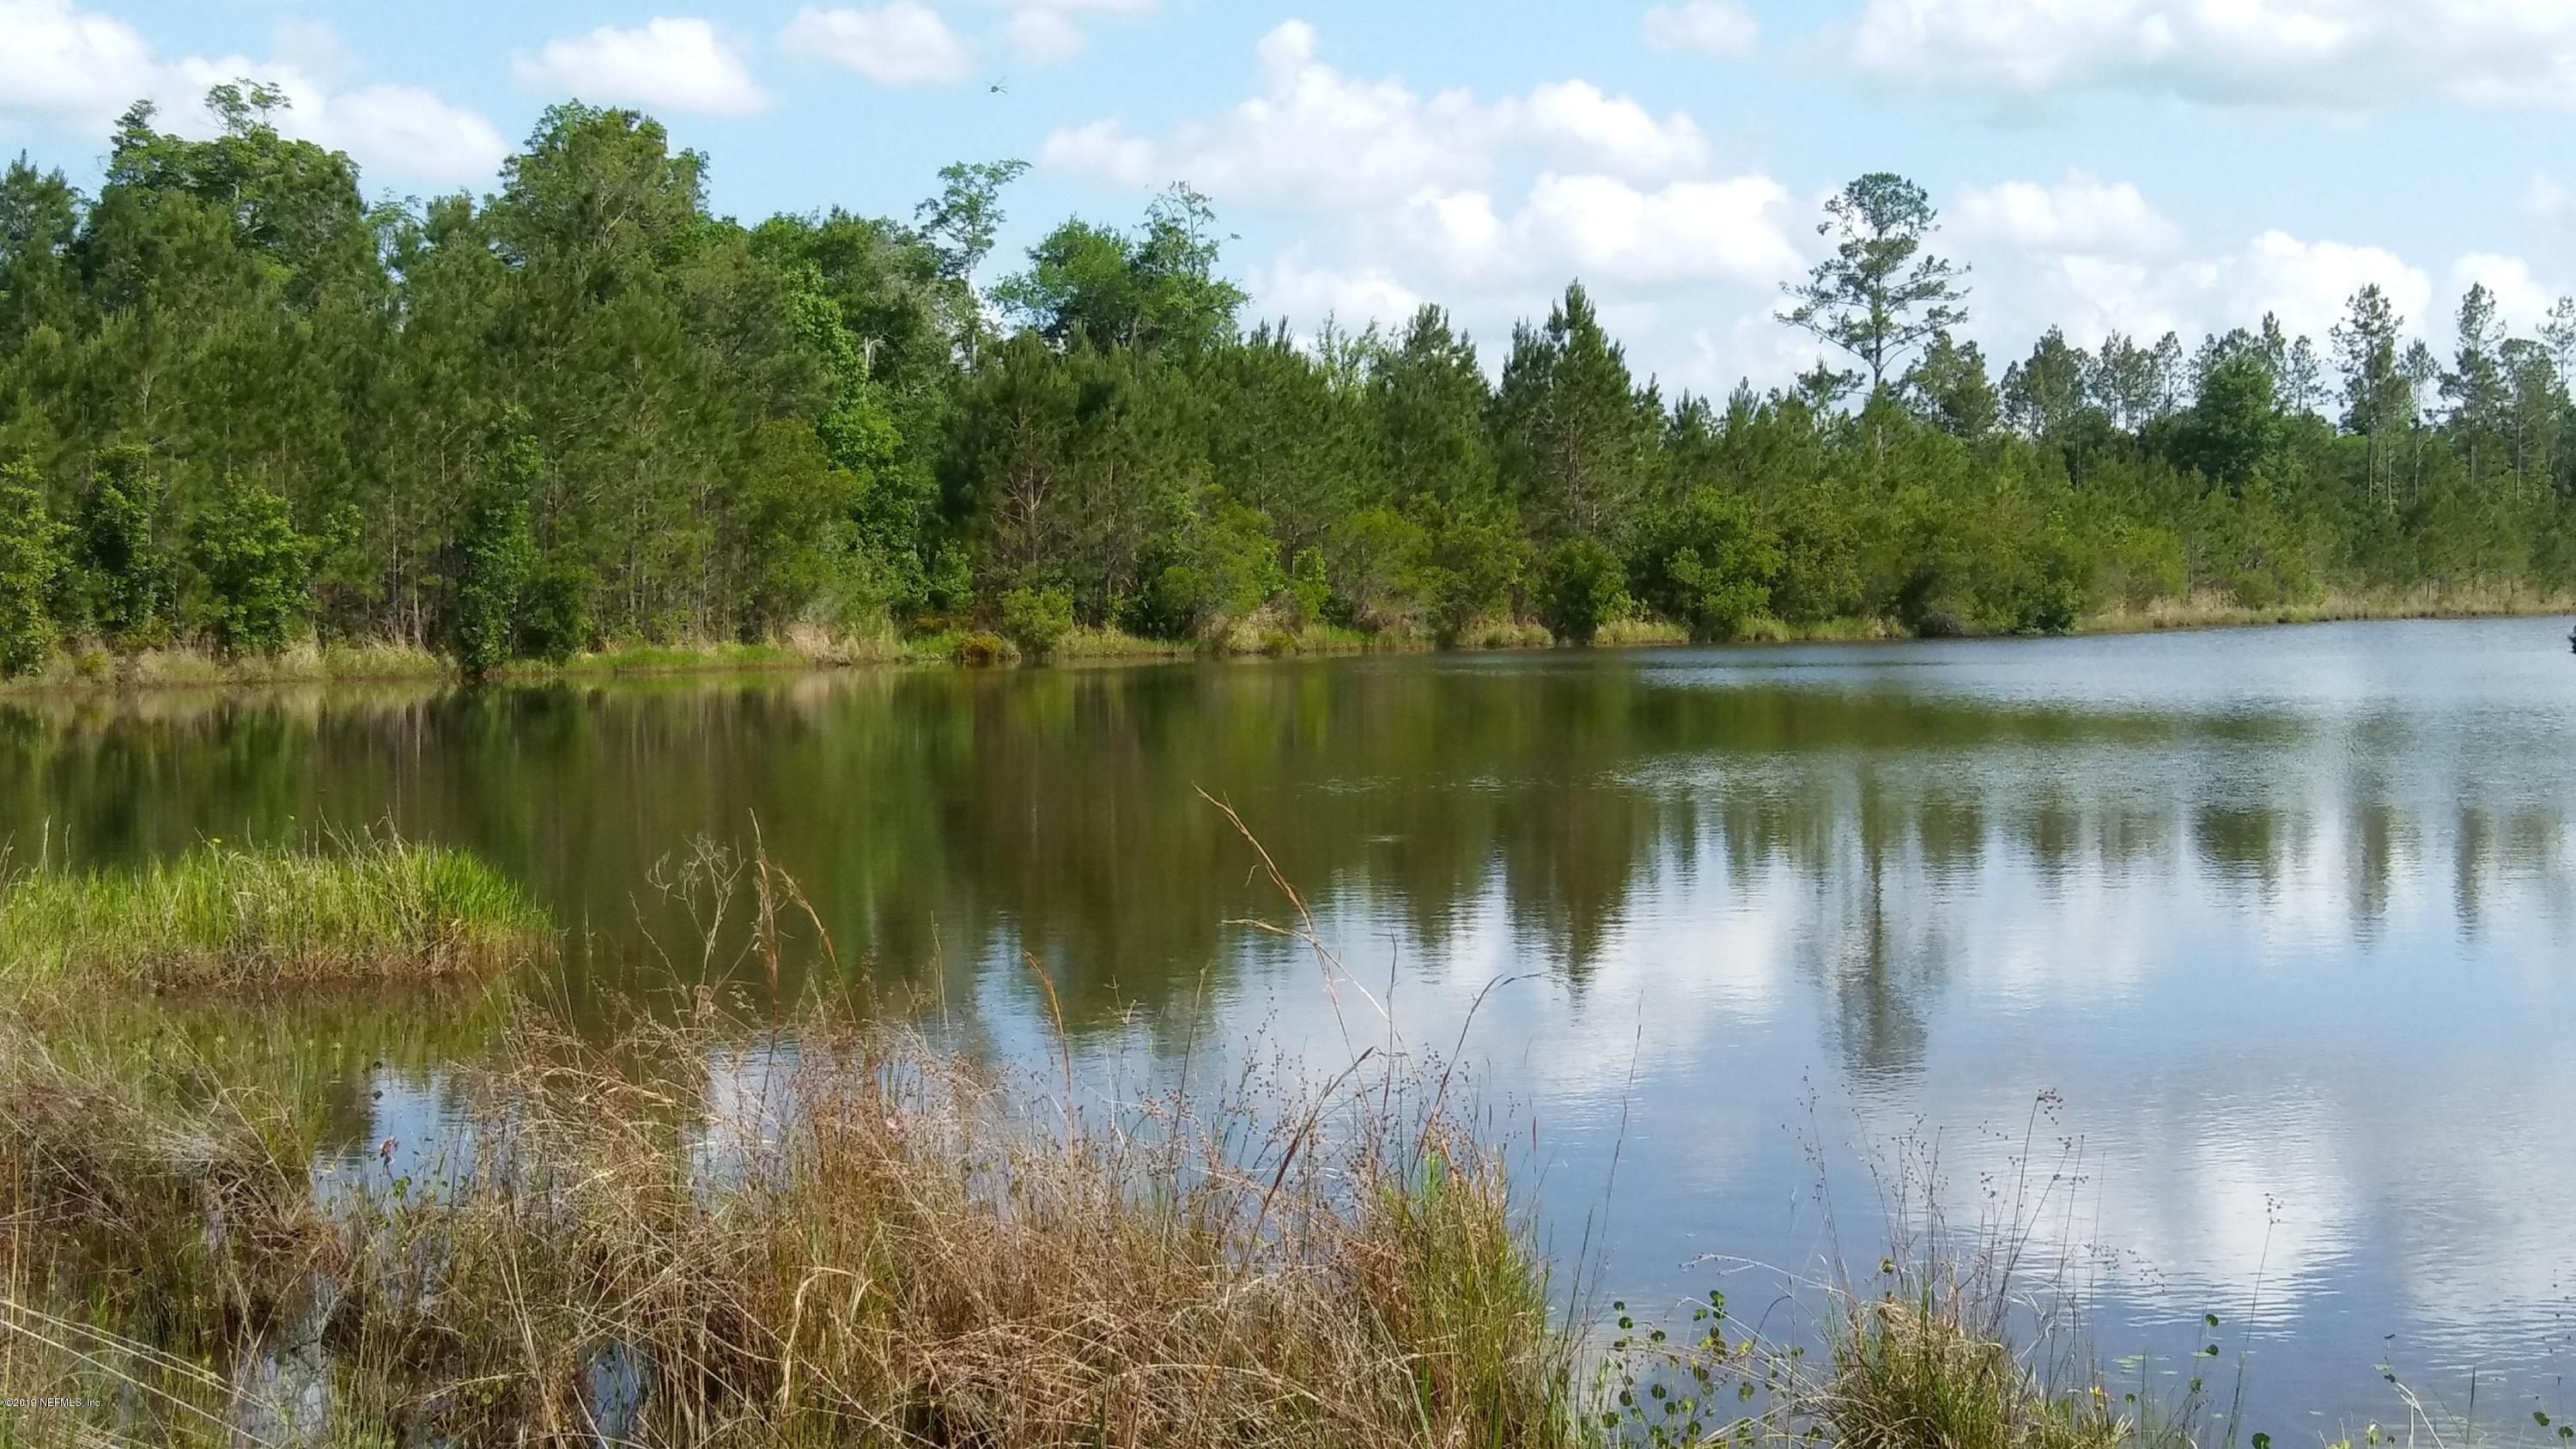 6475 COUNTY ROAD 218, JACKSONVILLE, FLORIDA 32234, ,Vacant land,For sale,COUNTY ROAD 218,993015